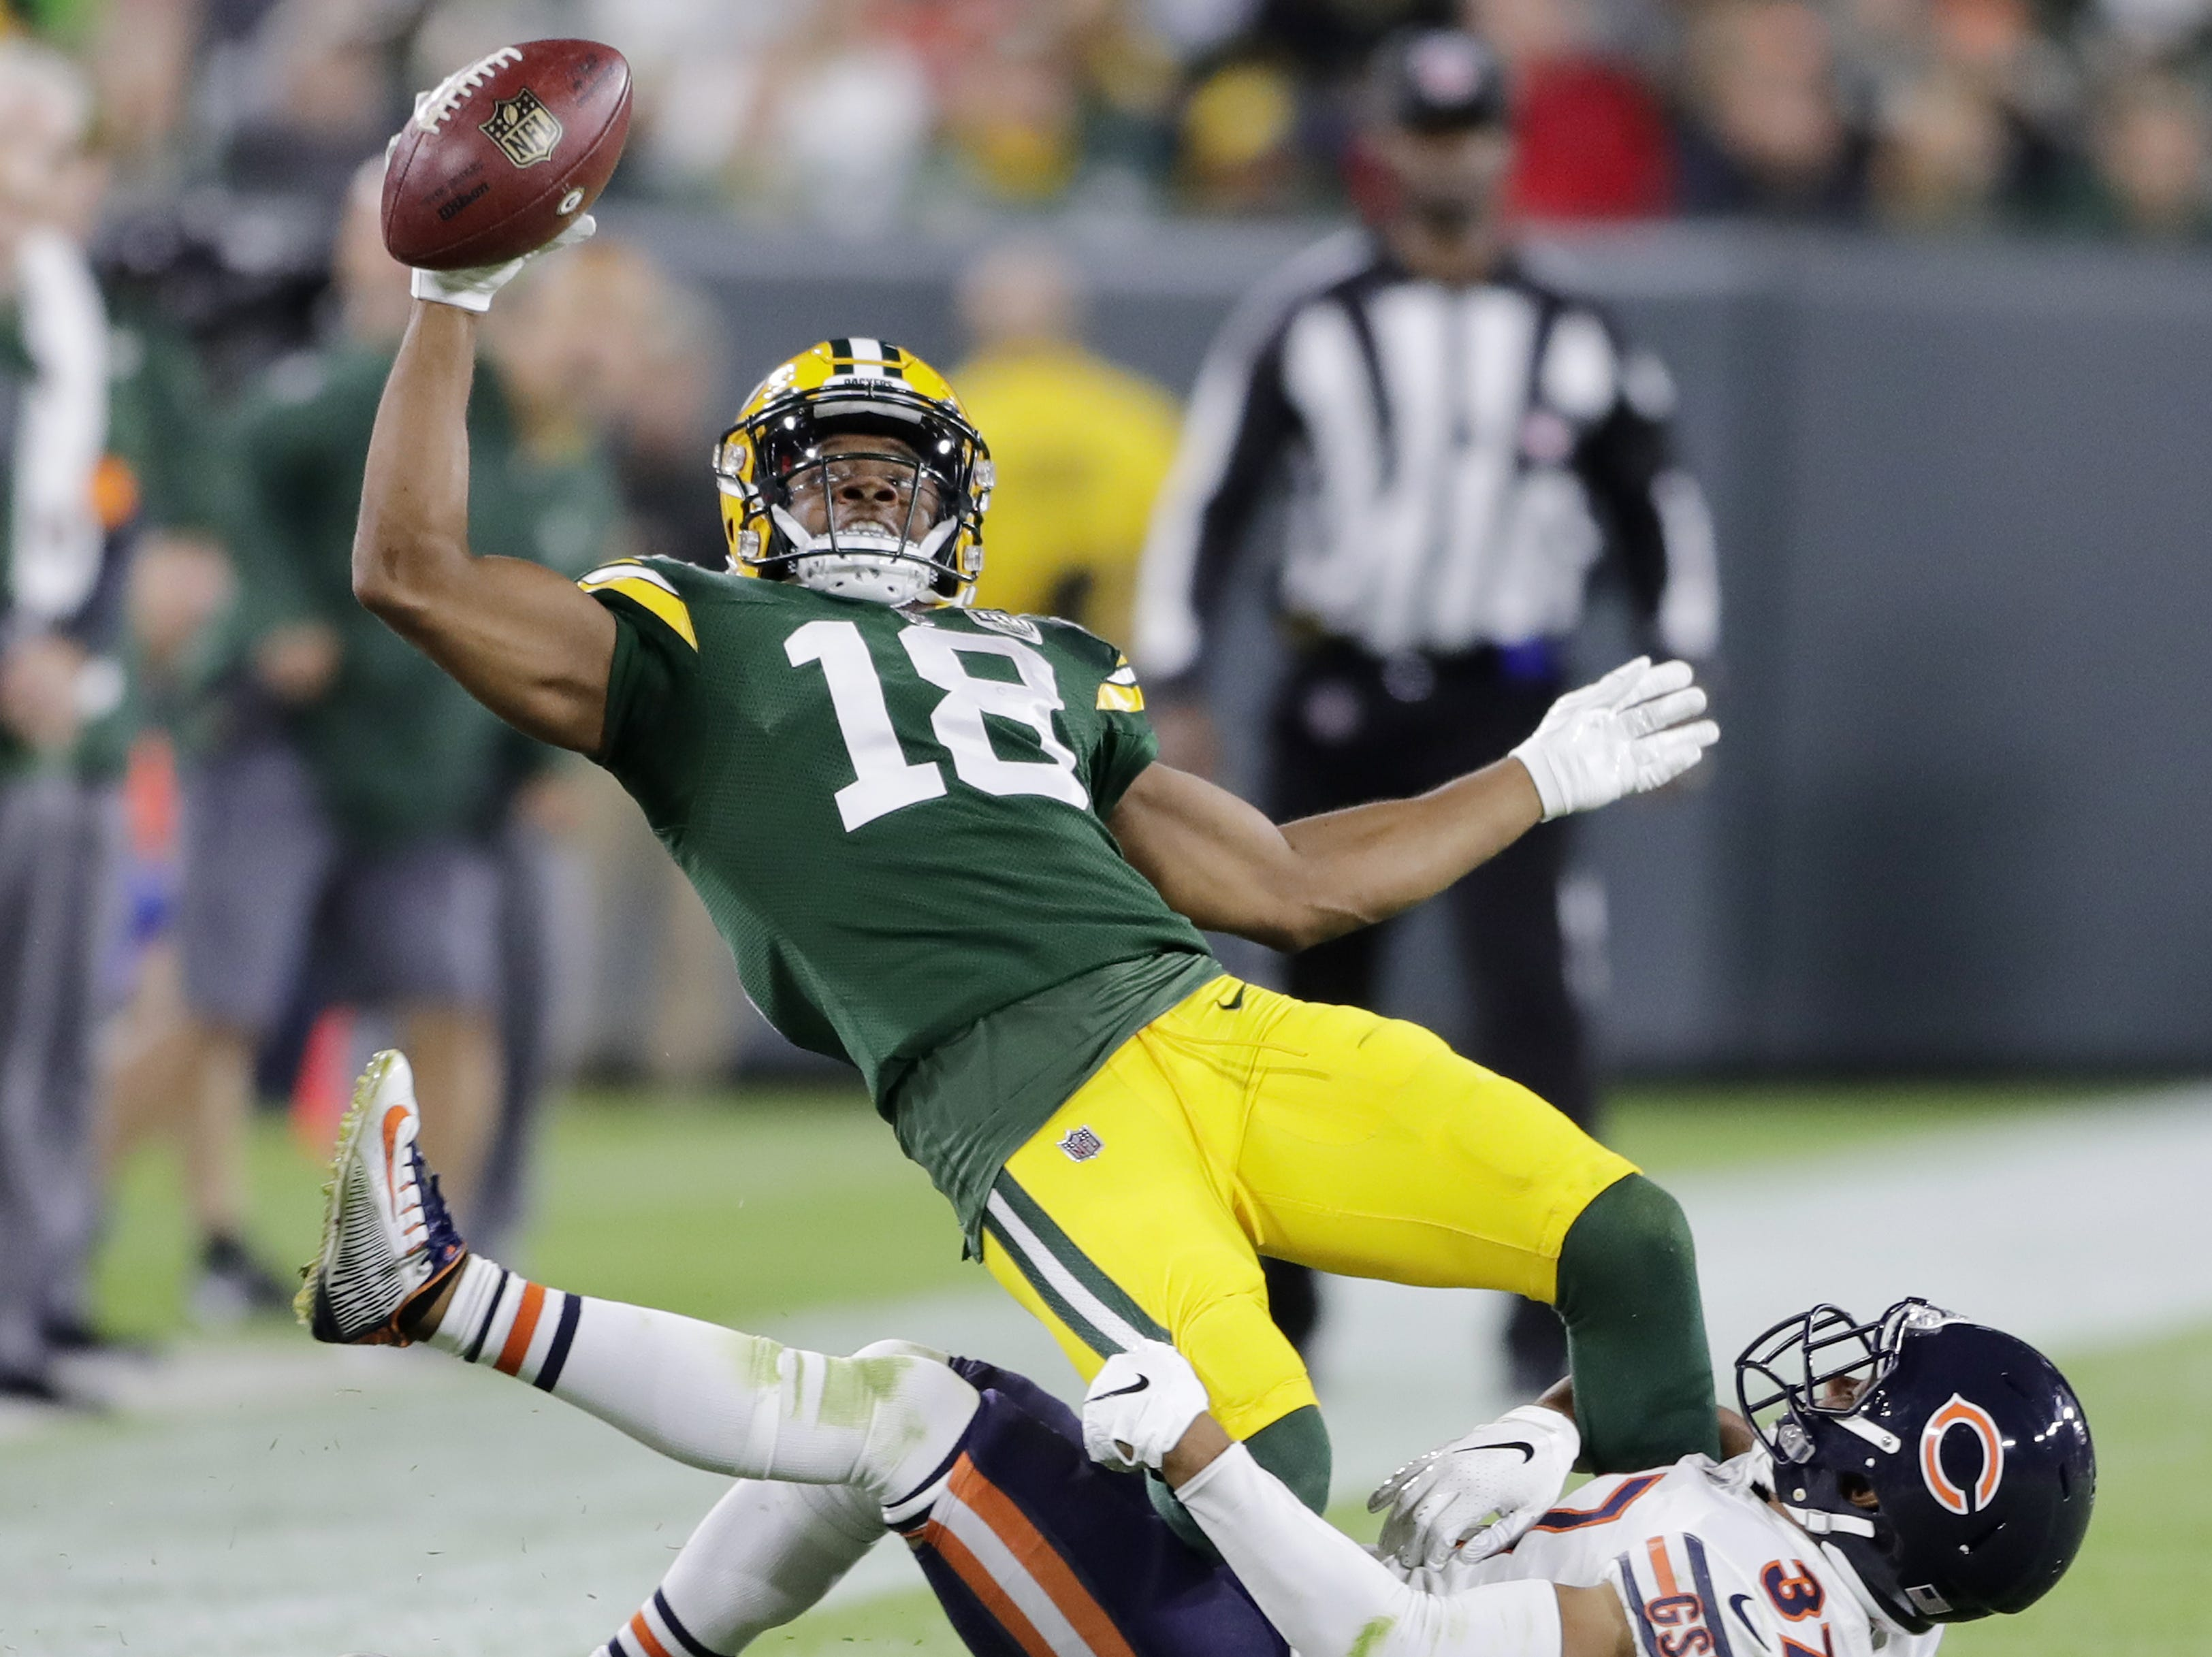 Green Bay Packers wide receiver Randall Cobb (18) reaches out for a first down in the third quarter against the Chicago Bears at Lambeau Field on Sunday, September 9, 2018 in Green Bay, Wis.